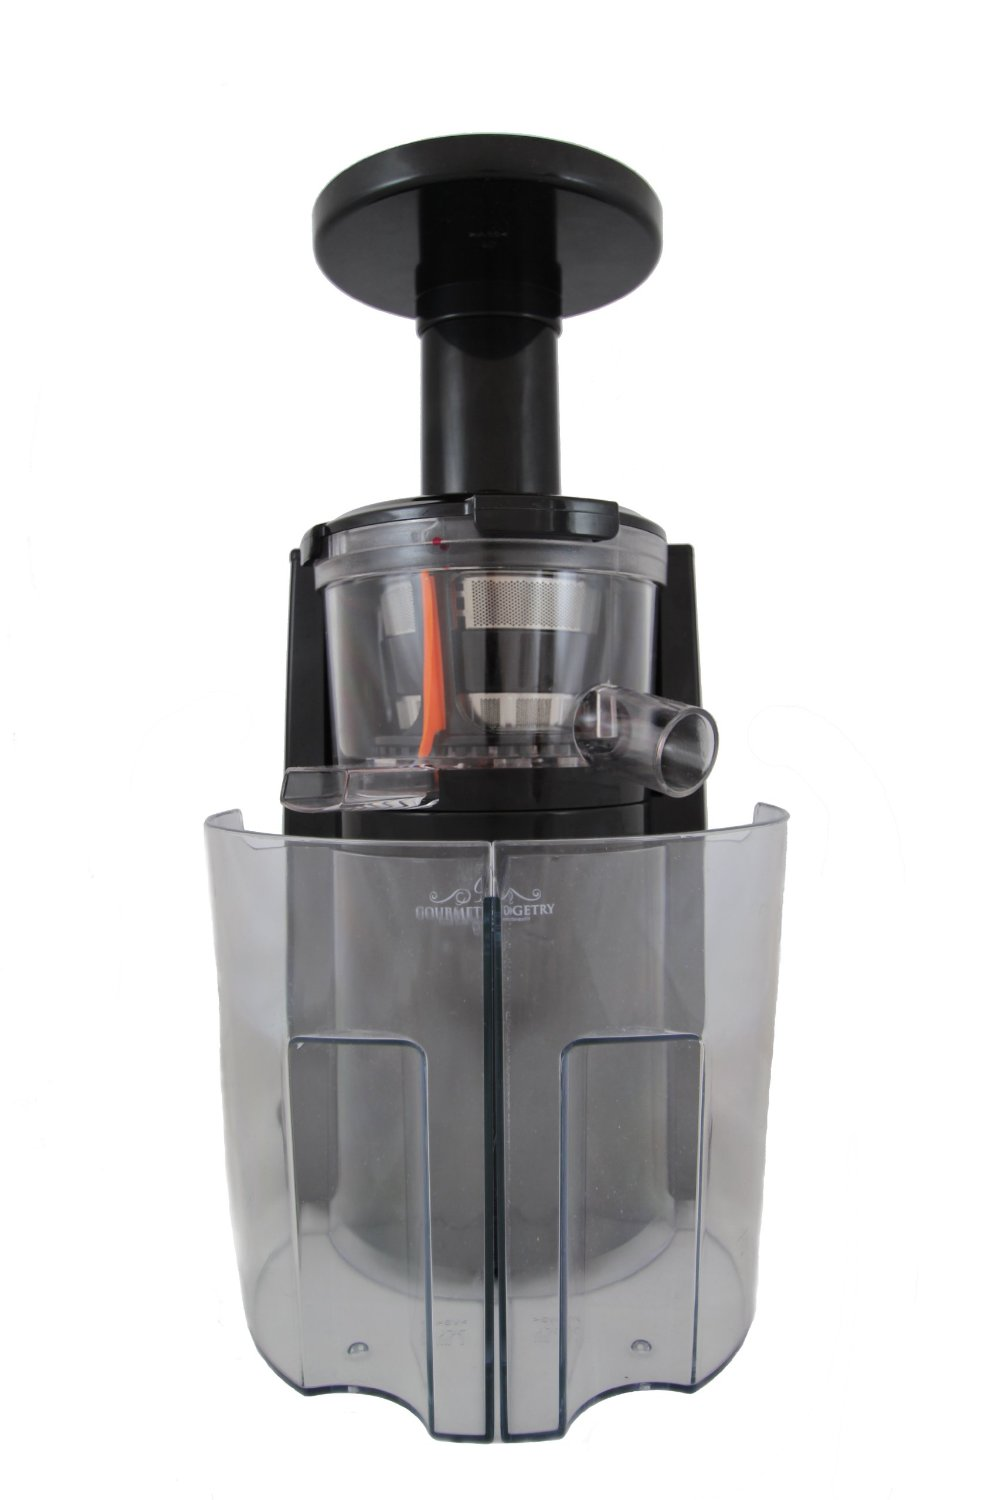 Best Slow Juicer For Greens : Gourmet Gadgetry Professional Slow Juicer Whole Fruit vegetables Leafy Greens